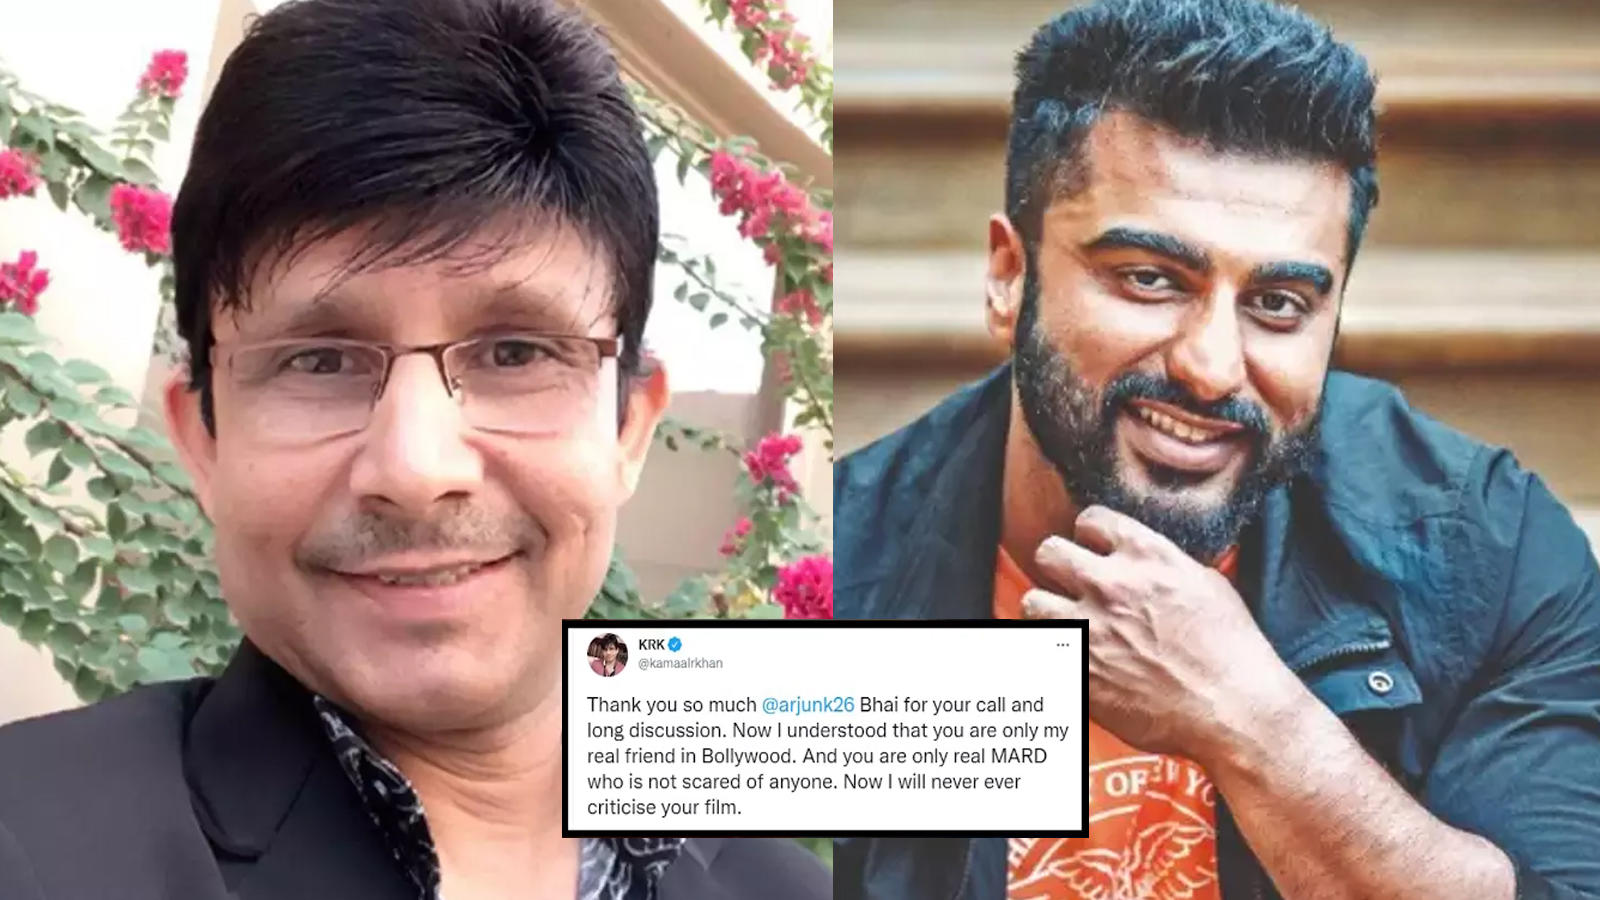 Kamaal R Khan aka KRK calls Arjun Kapoor his 'only real friend in Bollywood', says 'I will never ever criticize your film' | Hindi Movie News – Bollywood – Times of India